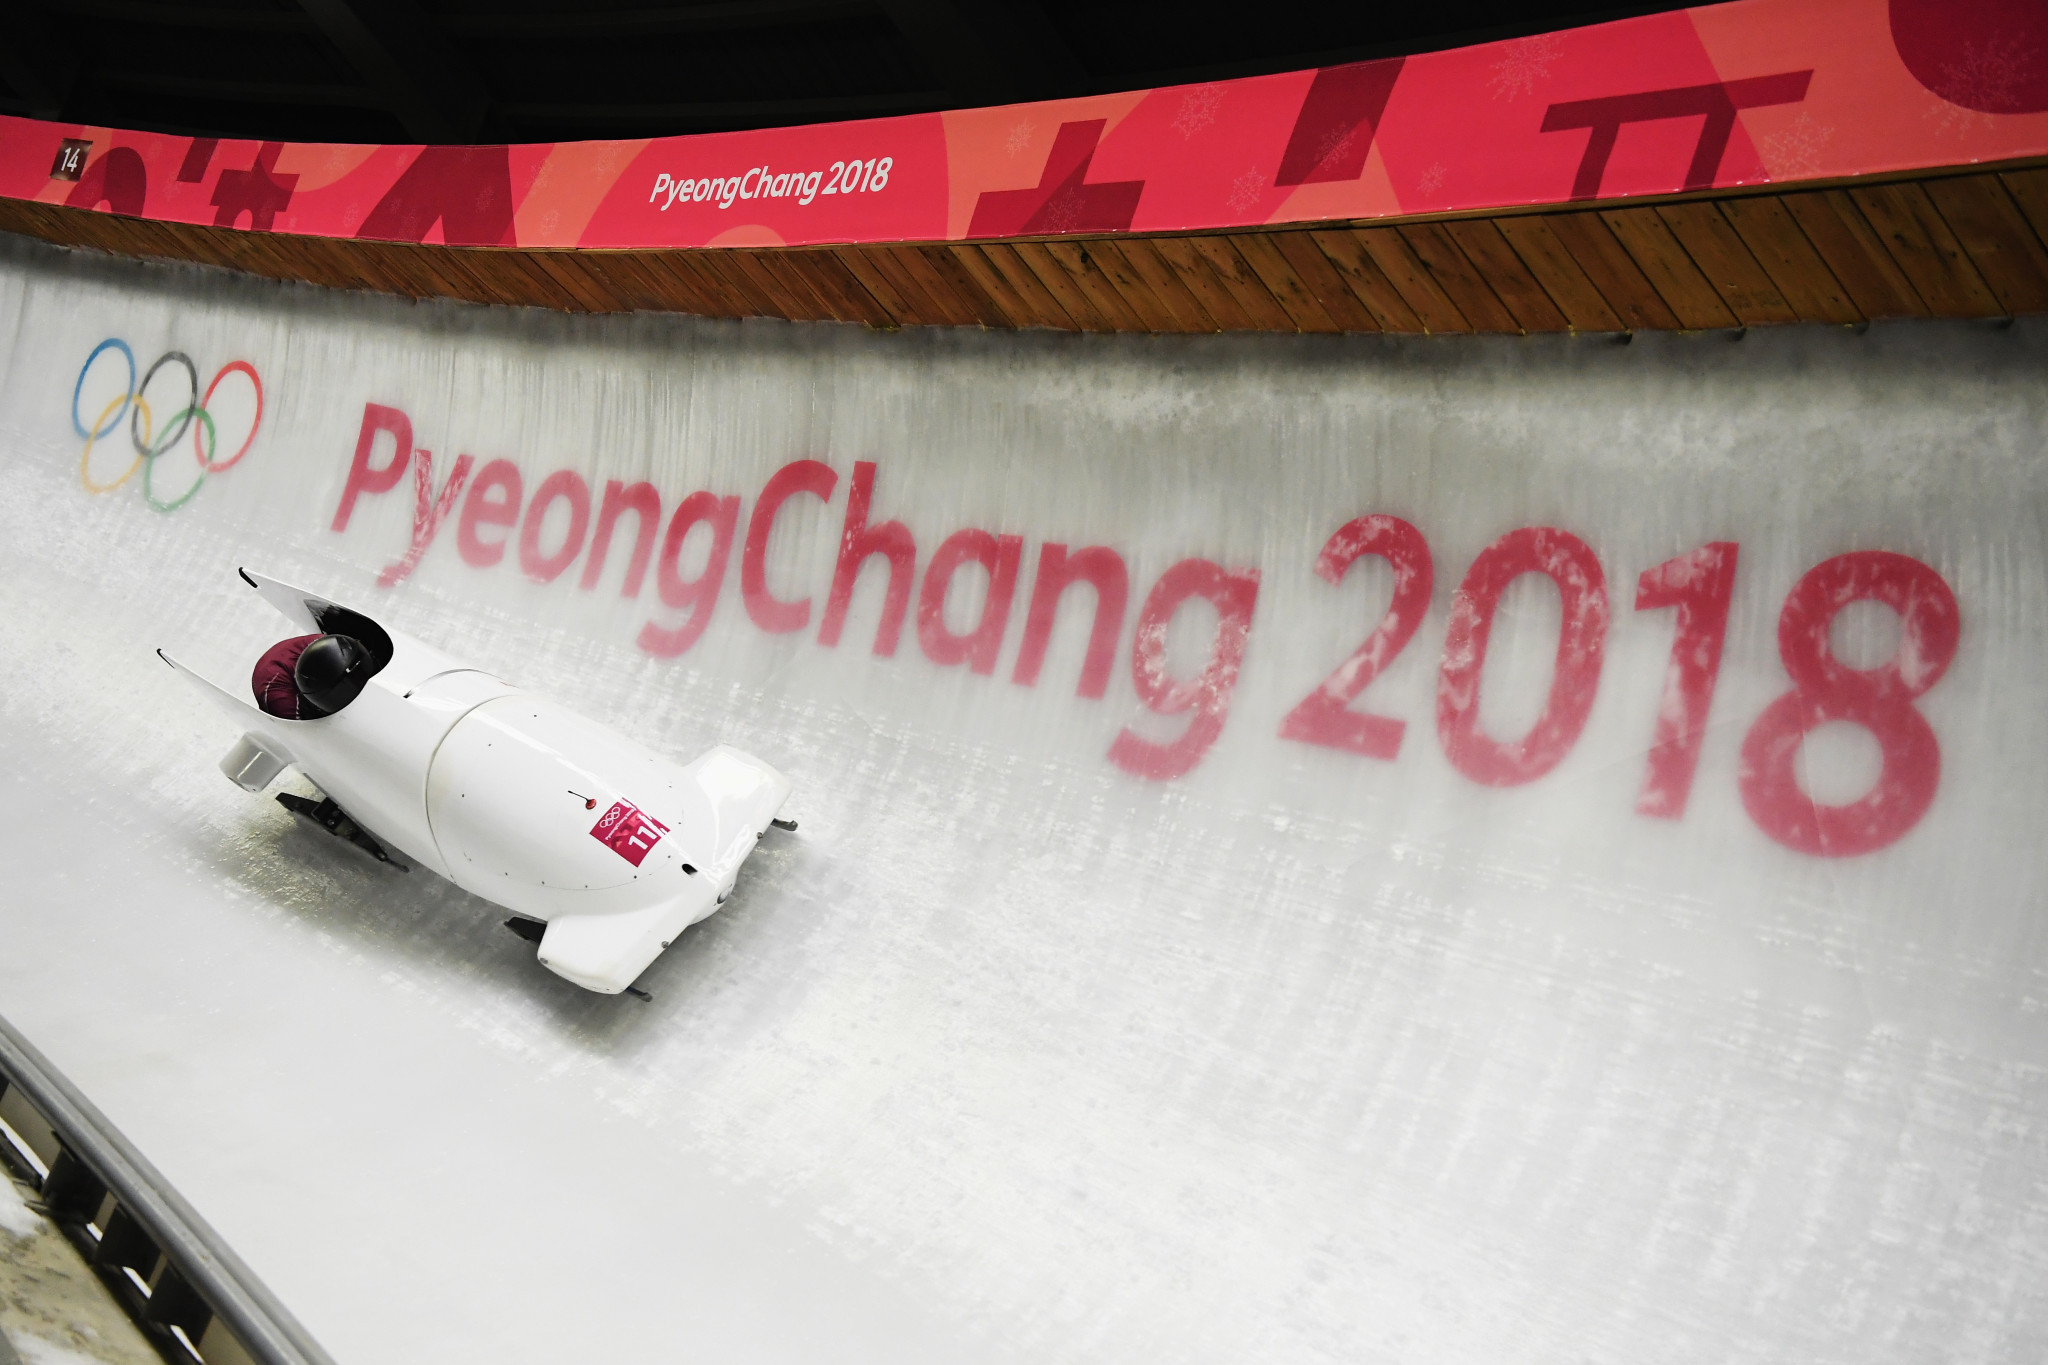 Russian bobsleigh athlete accepts eight-month ban after Pyeongchang 2018 drug failure